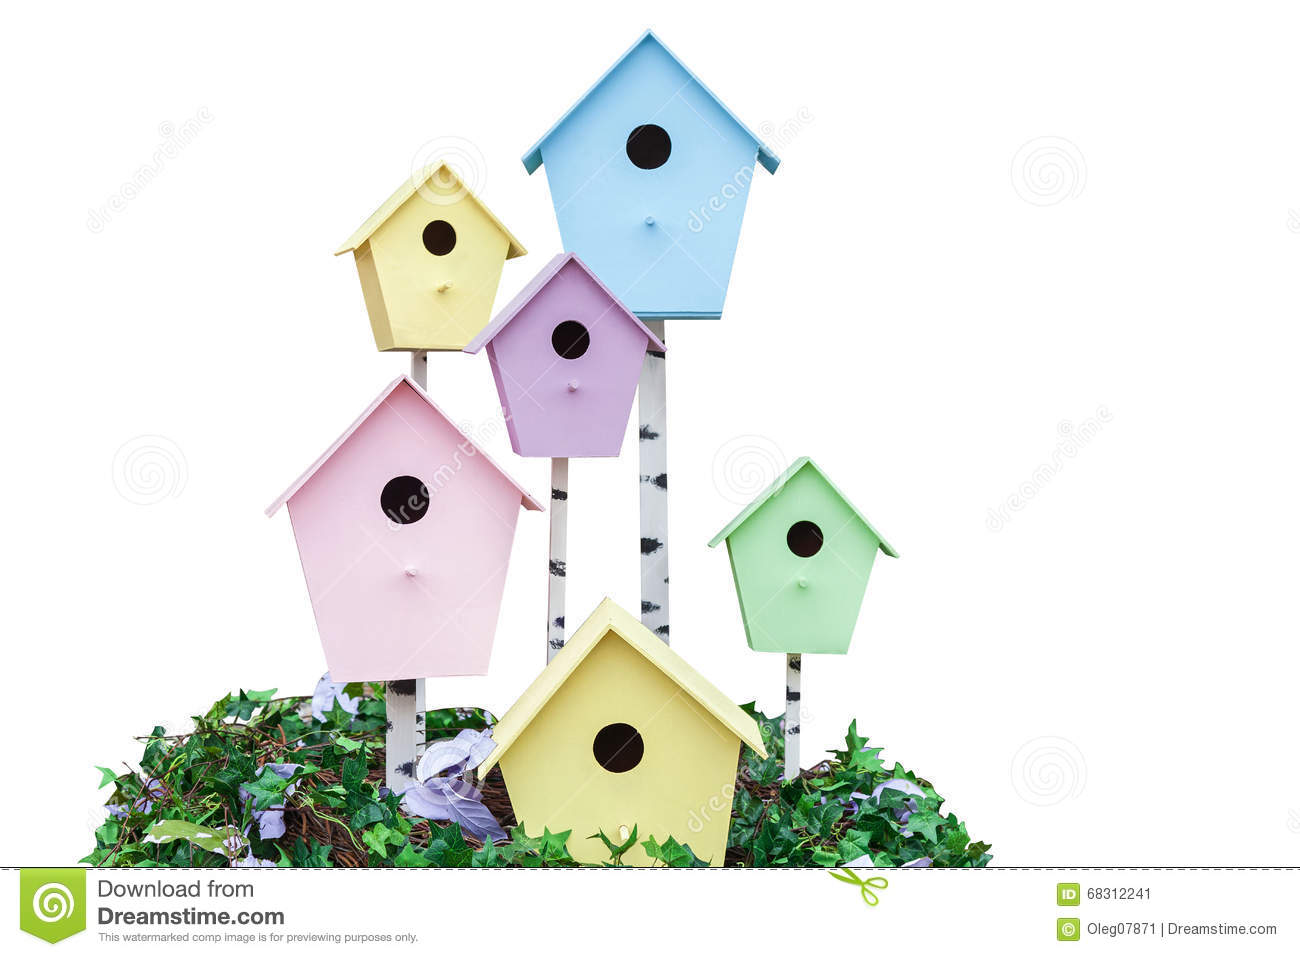 Jack starling house for birds wooden birdhouses in for Different types of birdhouses